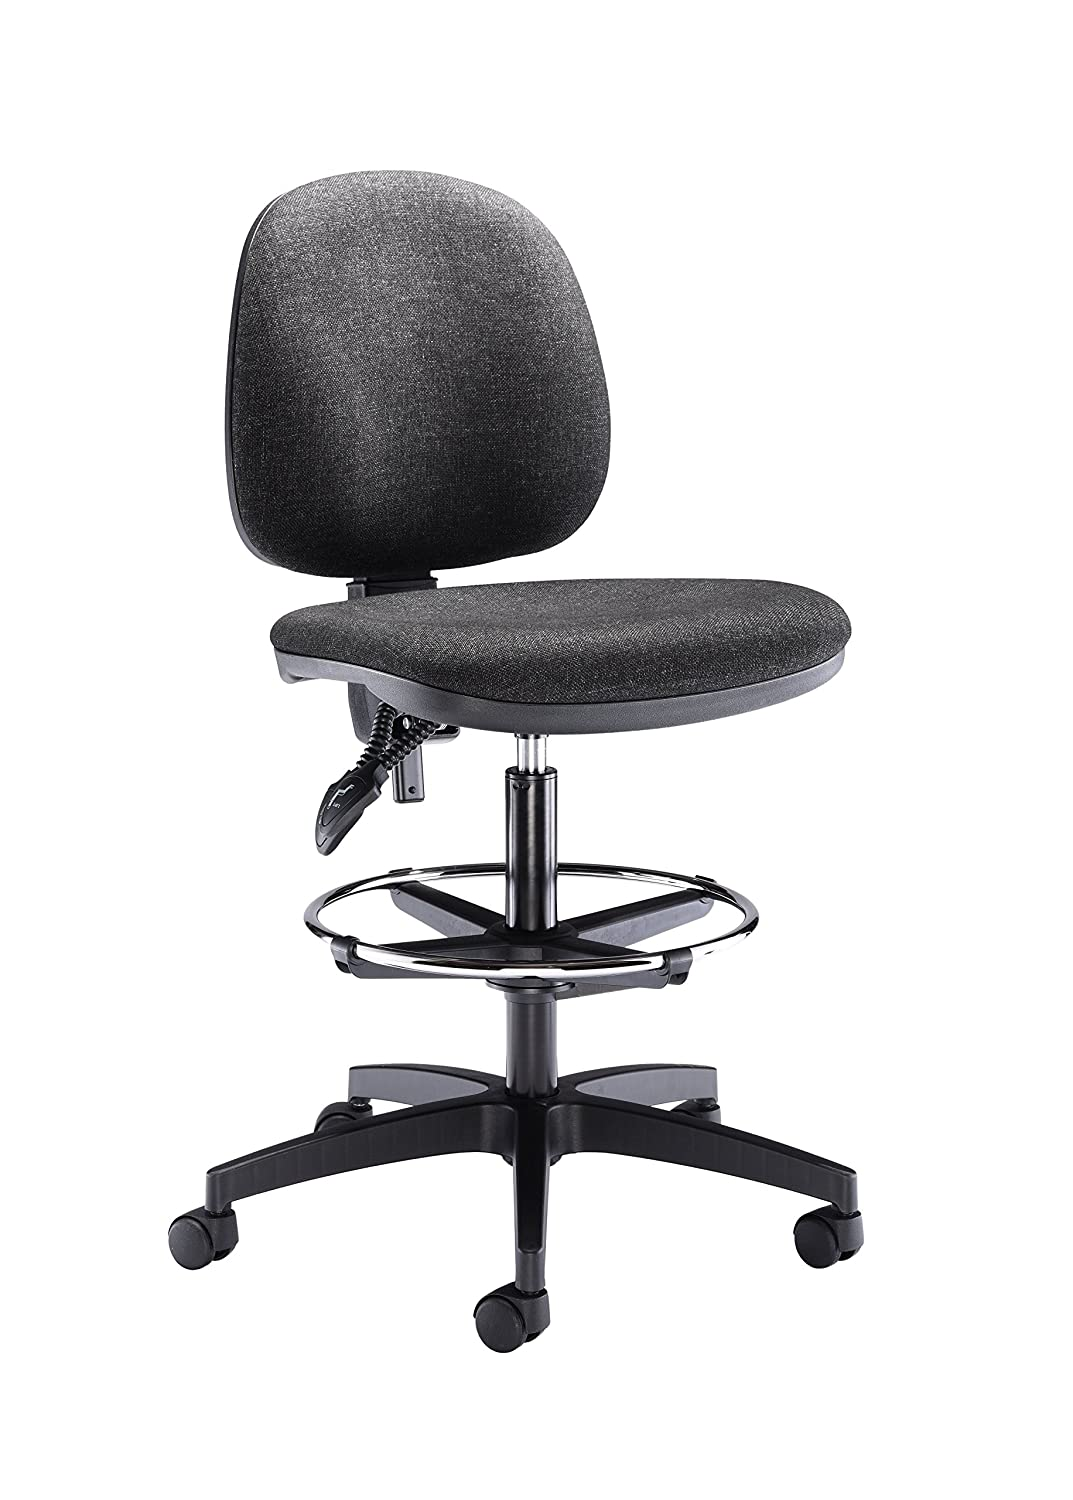 Office Hippo High Rise Ergonomic Mid Back Operator Chair with Adjustable Draughting Foot Ring, Fabric - Royal Blue TC Group OHN0022RB